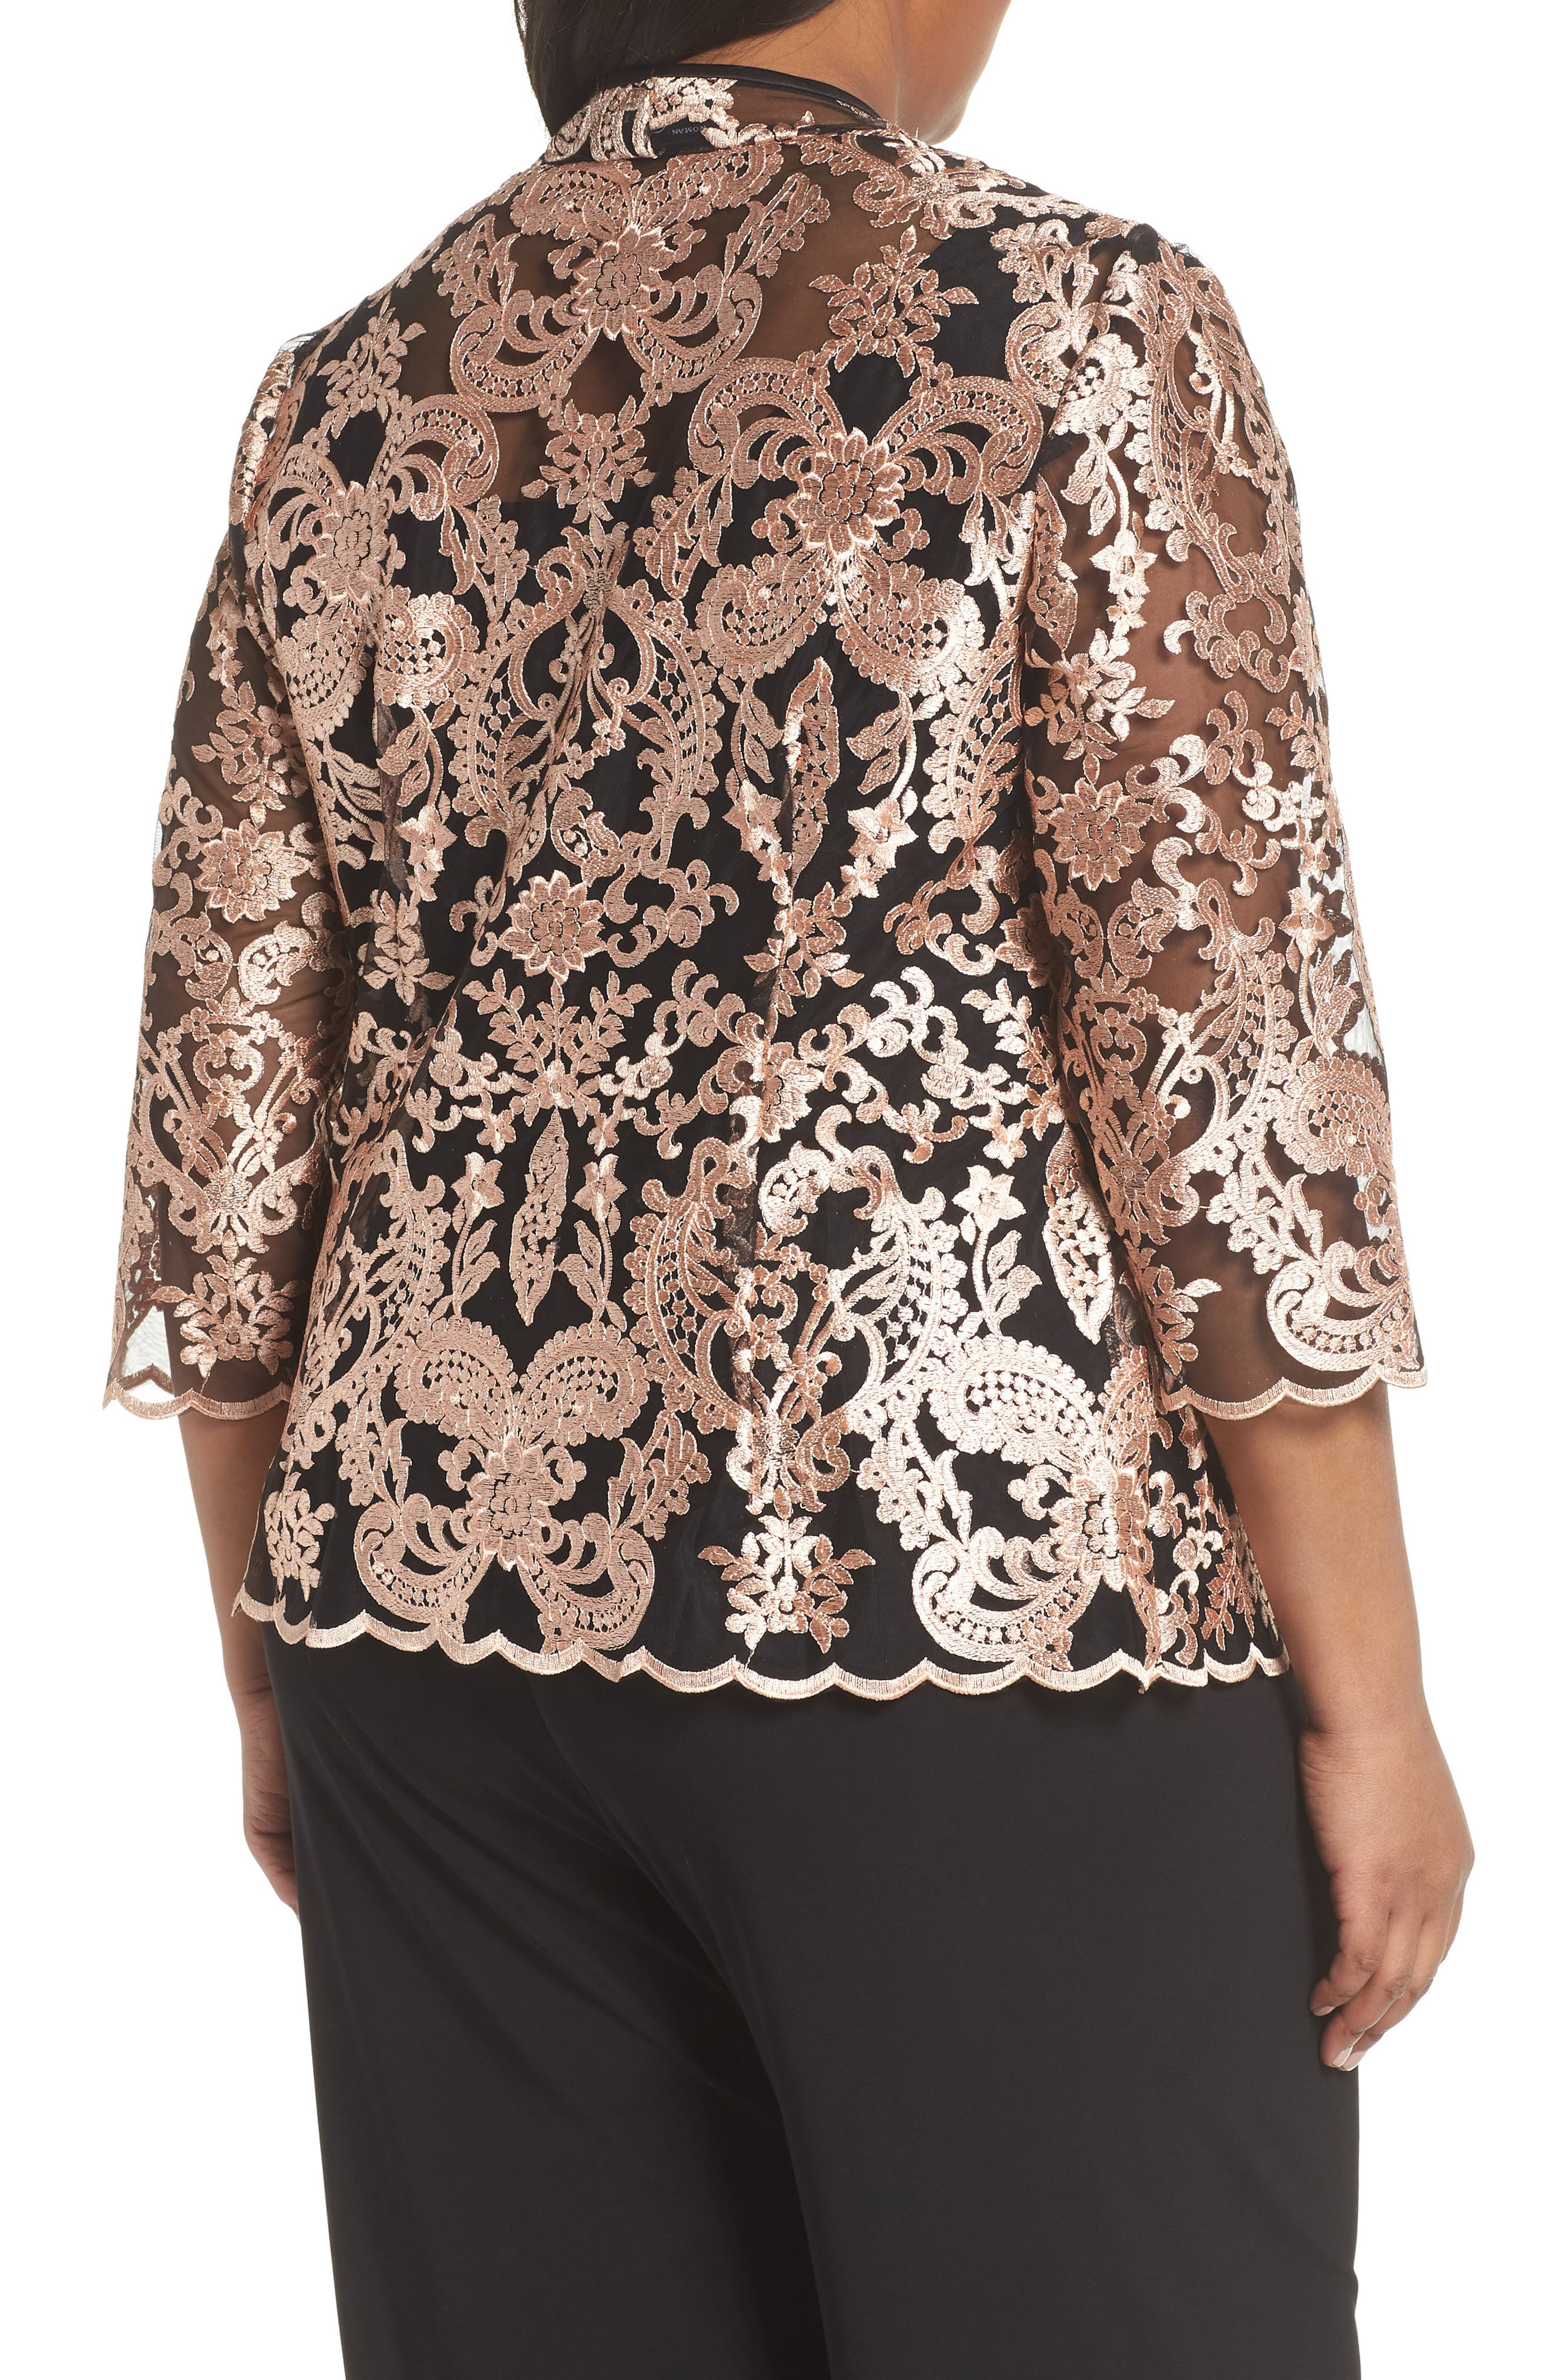 Top & Embroidered Jacket,                             Alternate thumbnail 2, color,                             Black/ Coral